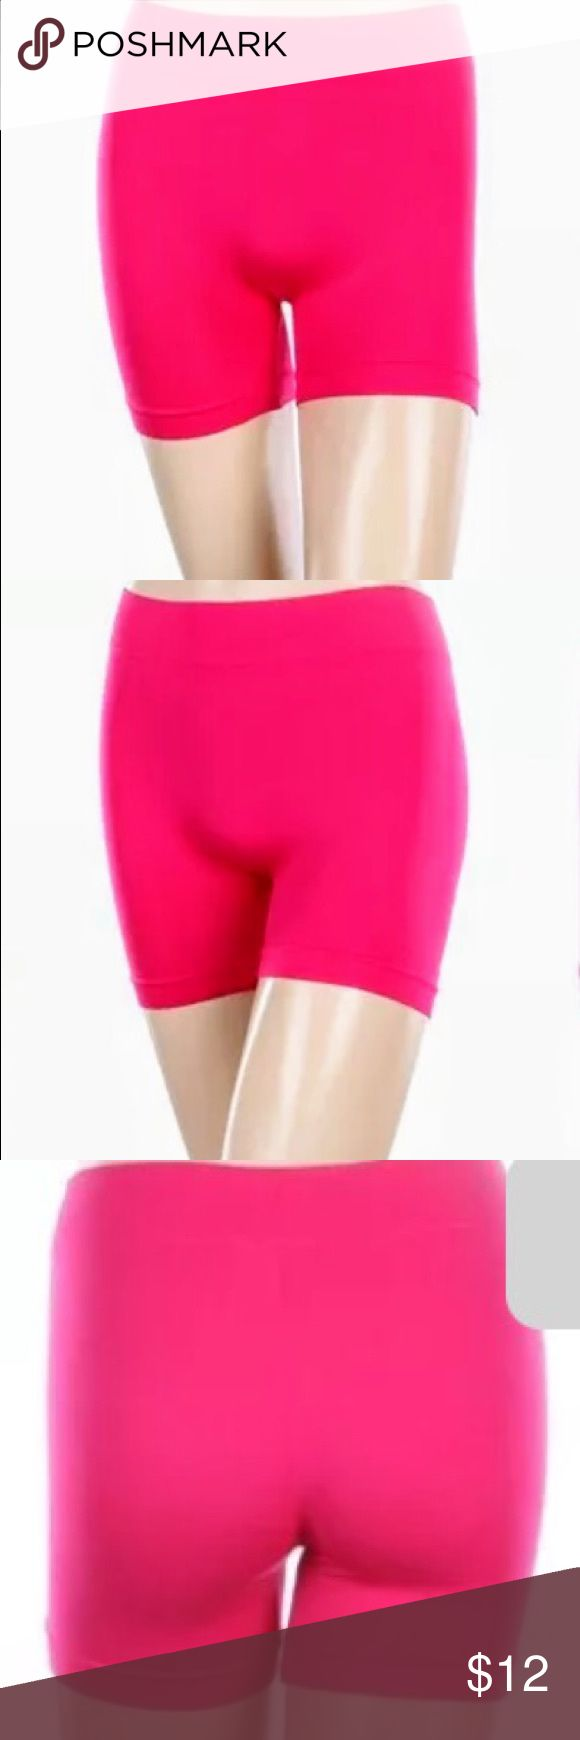 New color plus size bikers pants hot pink This is a stunning color for summer days 💕new color hot pink plus size comfortable keeps the heat out cold in 💕💕💕great stretch silky soft elastic waist band love plus  Shorts Skorts